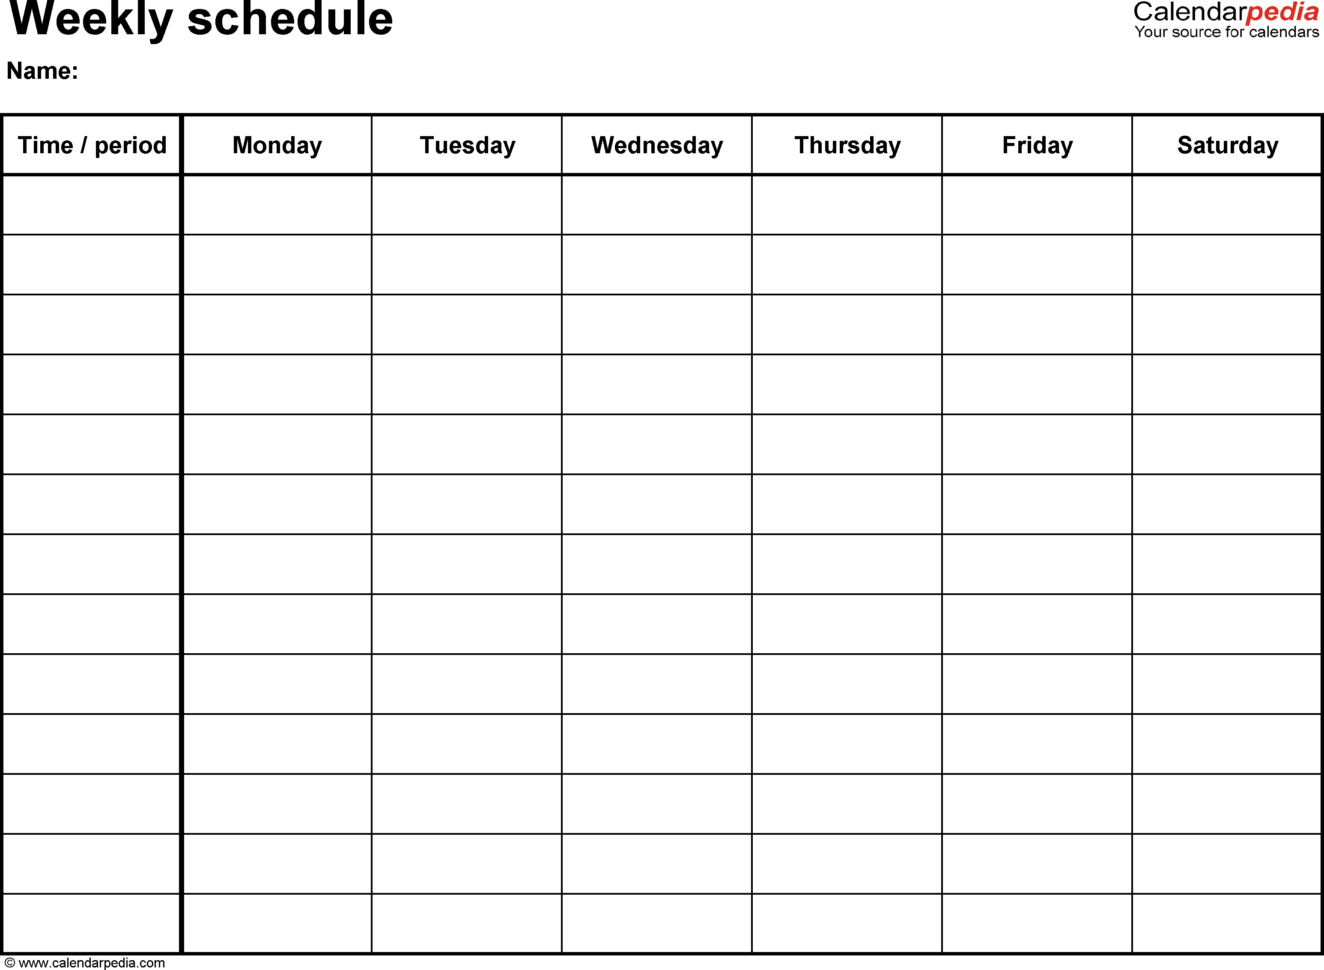 Weekly Schedule Spreadsheet Intended For Free Weekly Schedule Templates For Excel  18 Templates